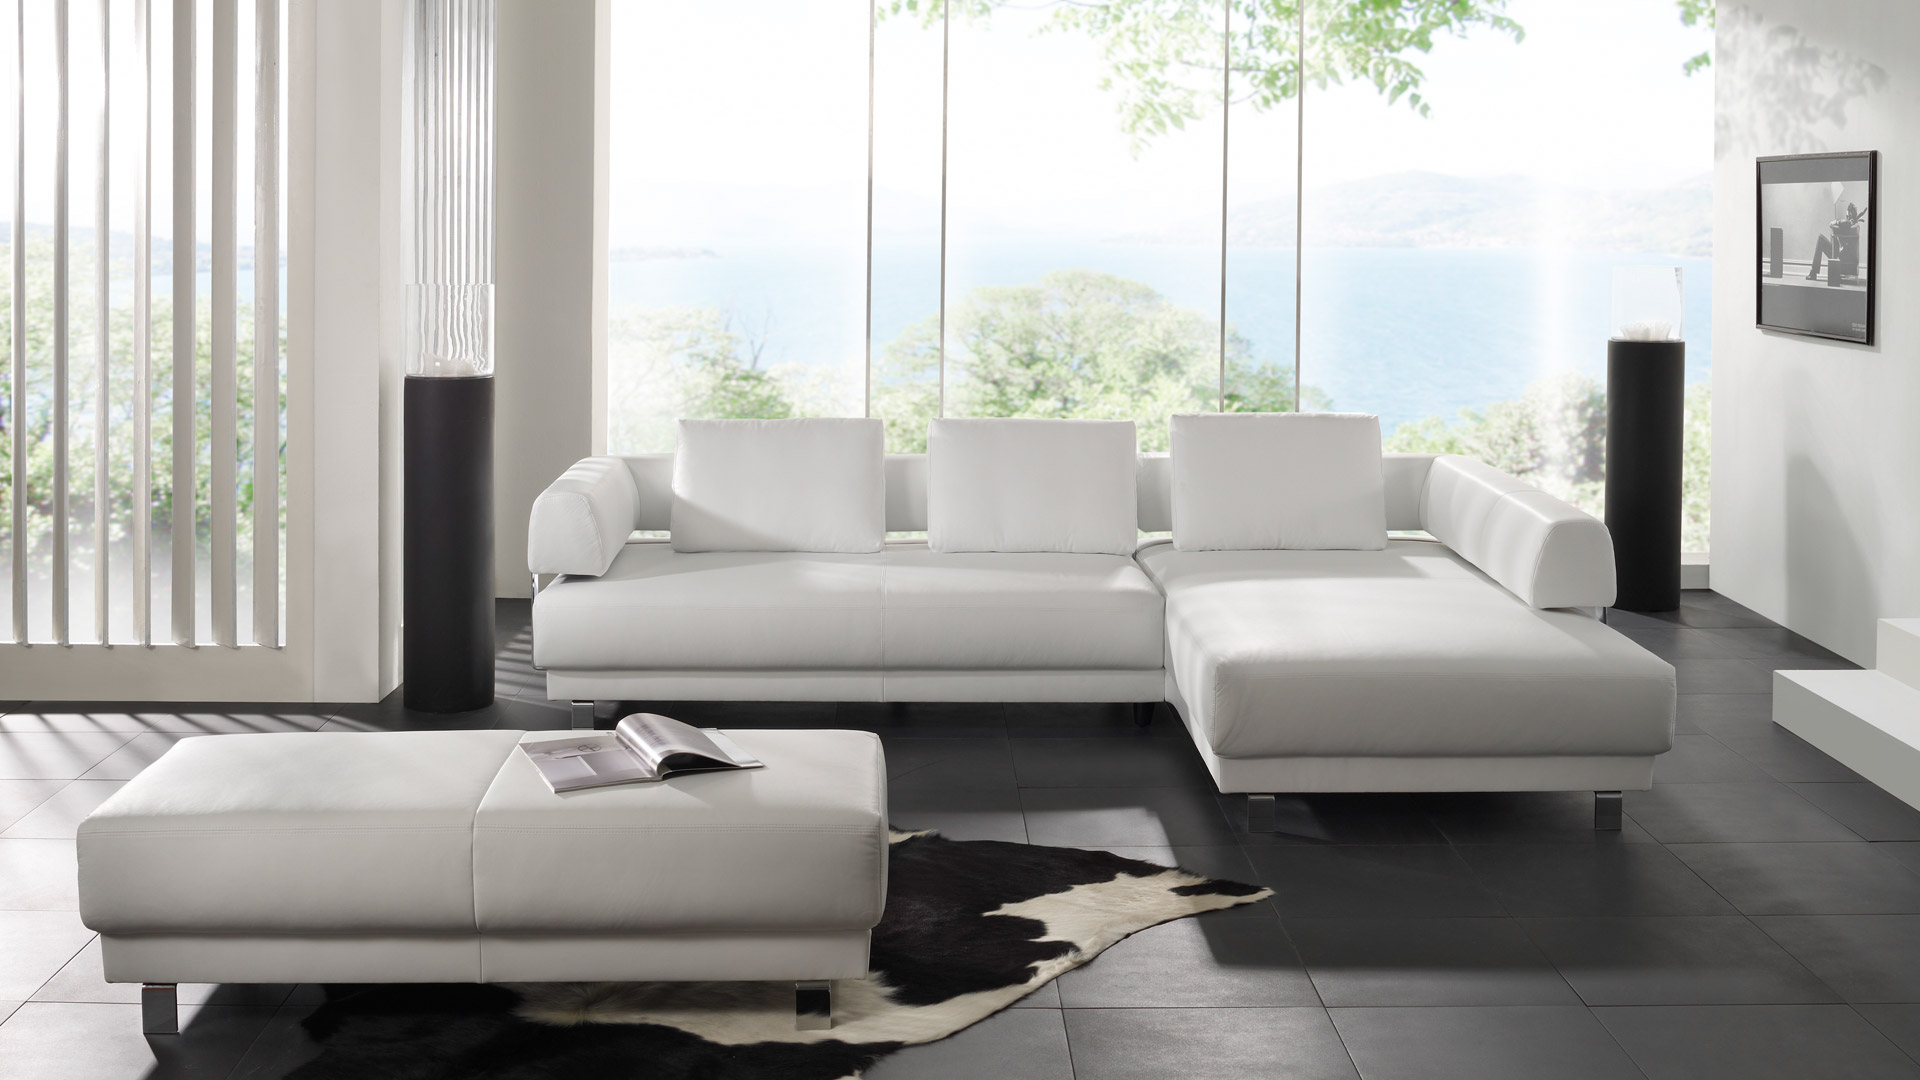 Schillig Sofa Perfect Furniture In A House Or In An Office: Wonderful Modern Style Minimalist White Schillig Sofa Design Ideas